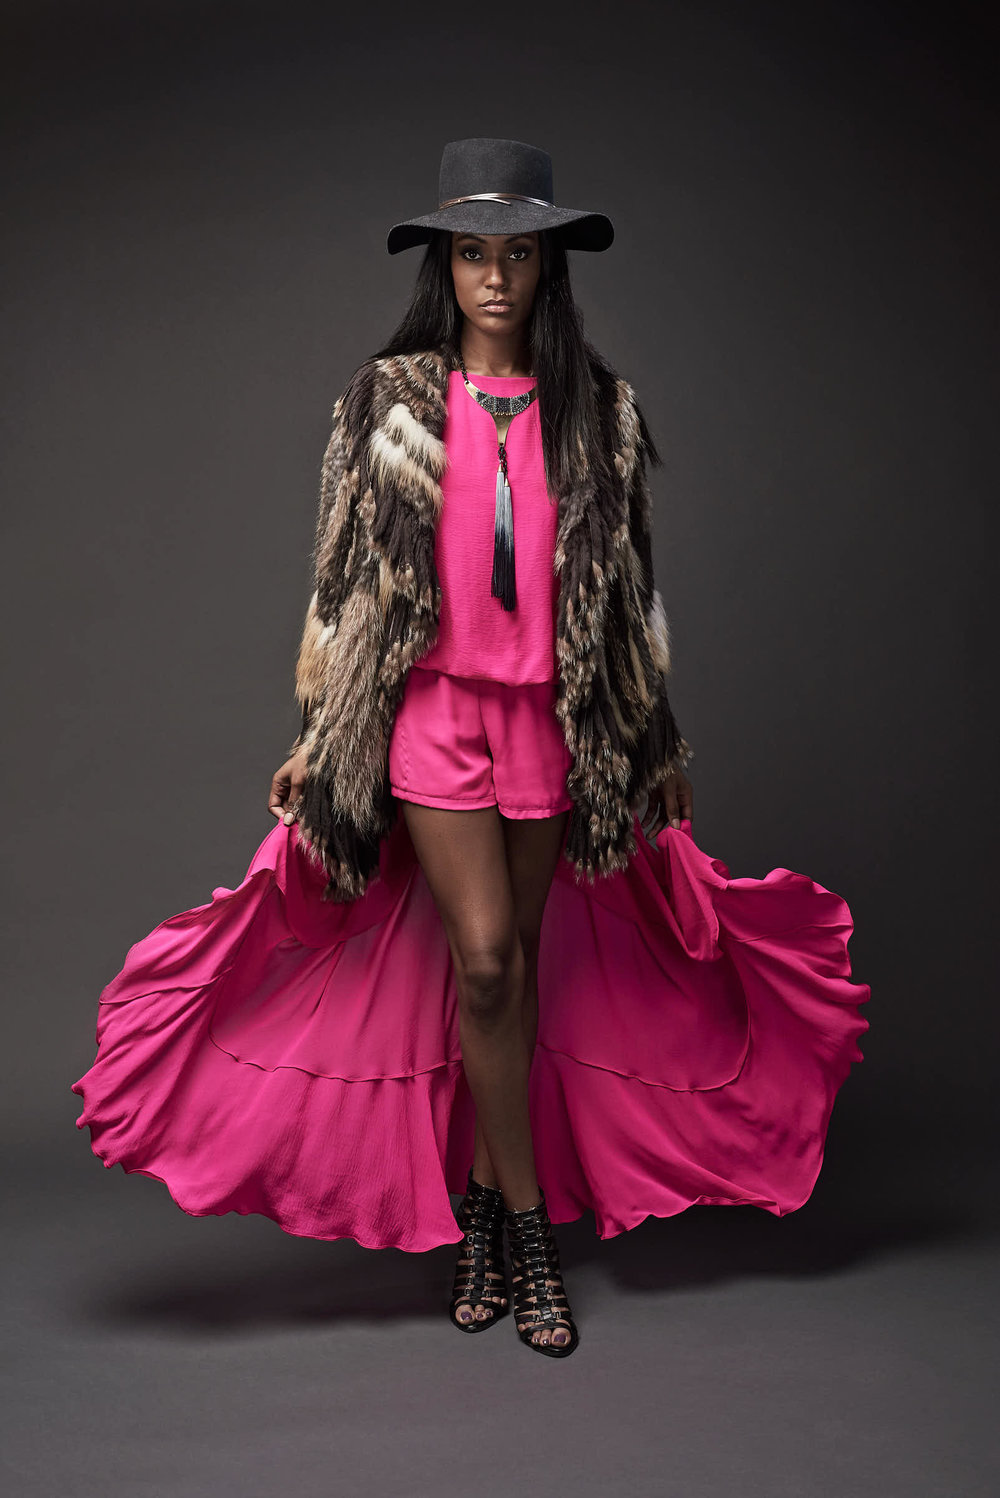 fashion-portrait-hat-pink-skort-flowing-fur-shawl.jpg